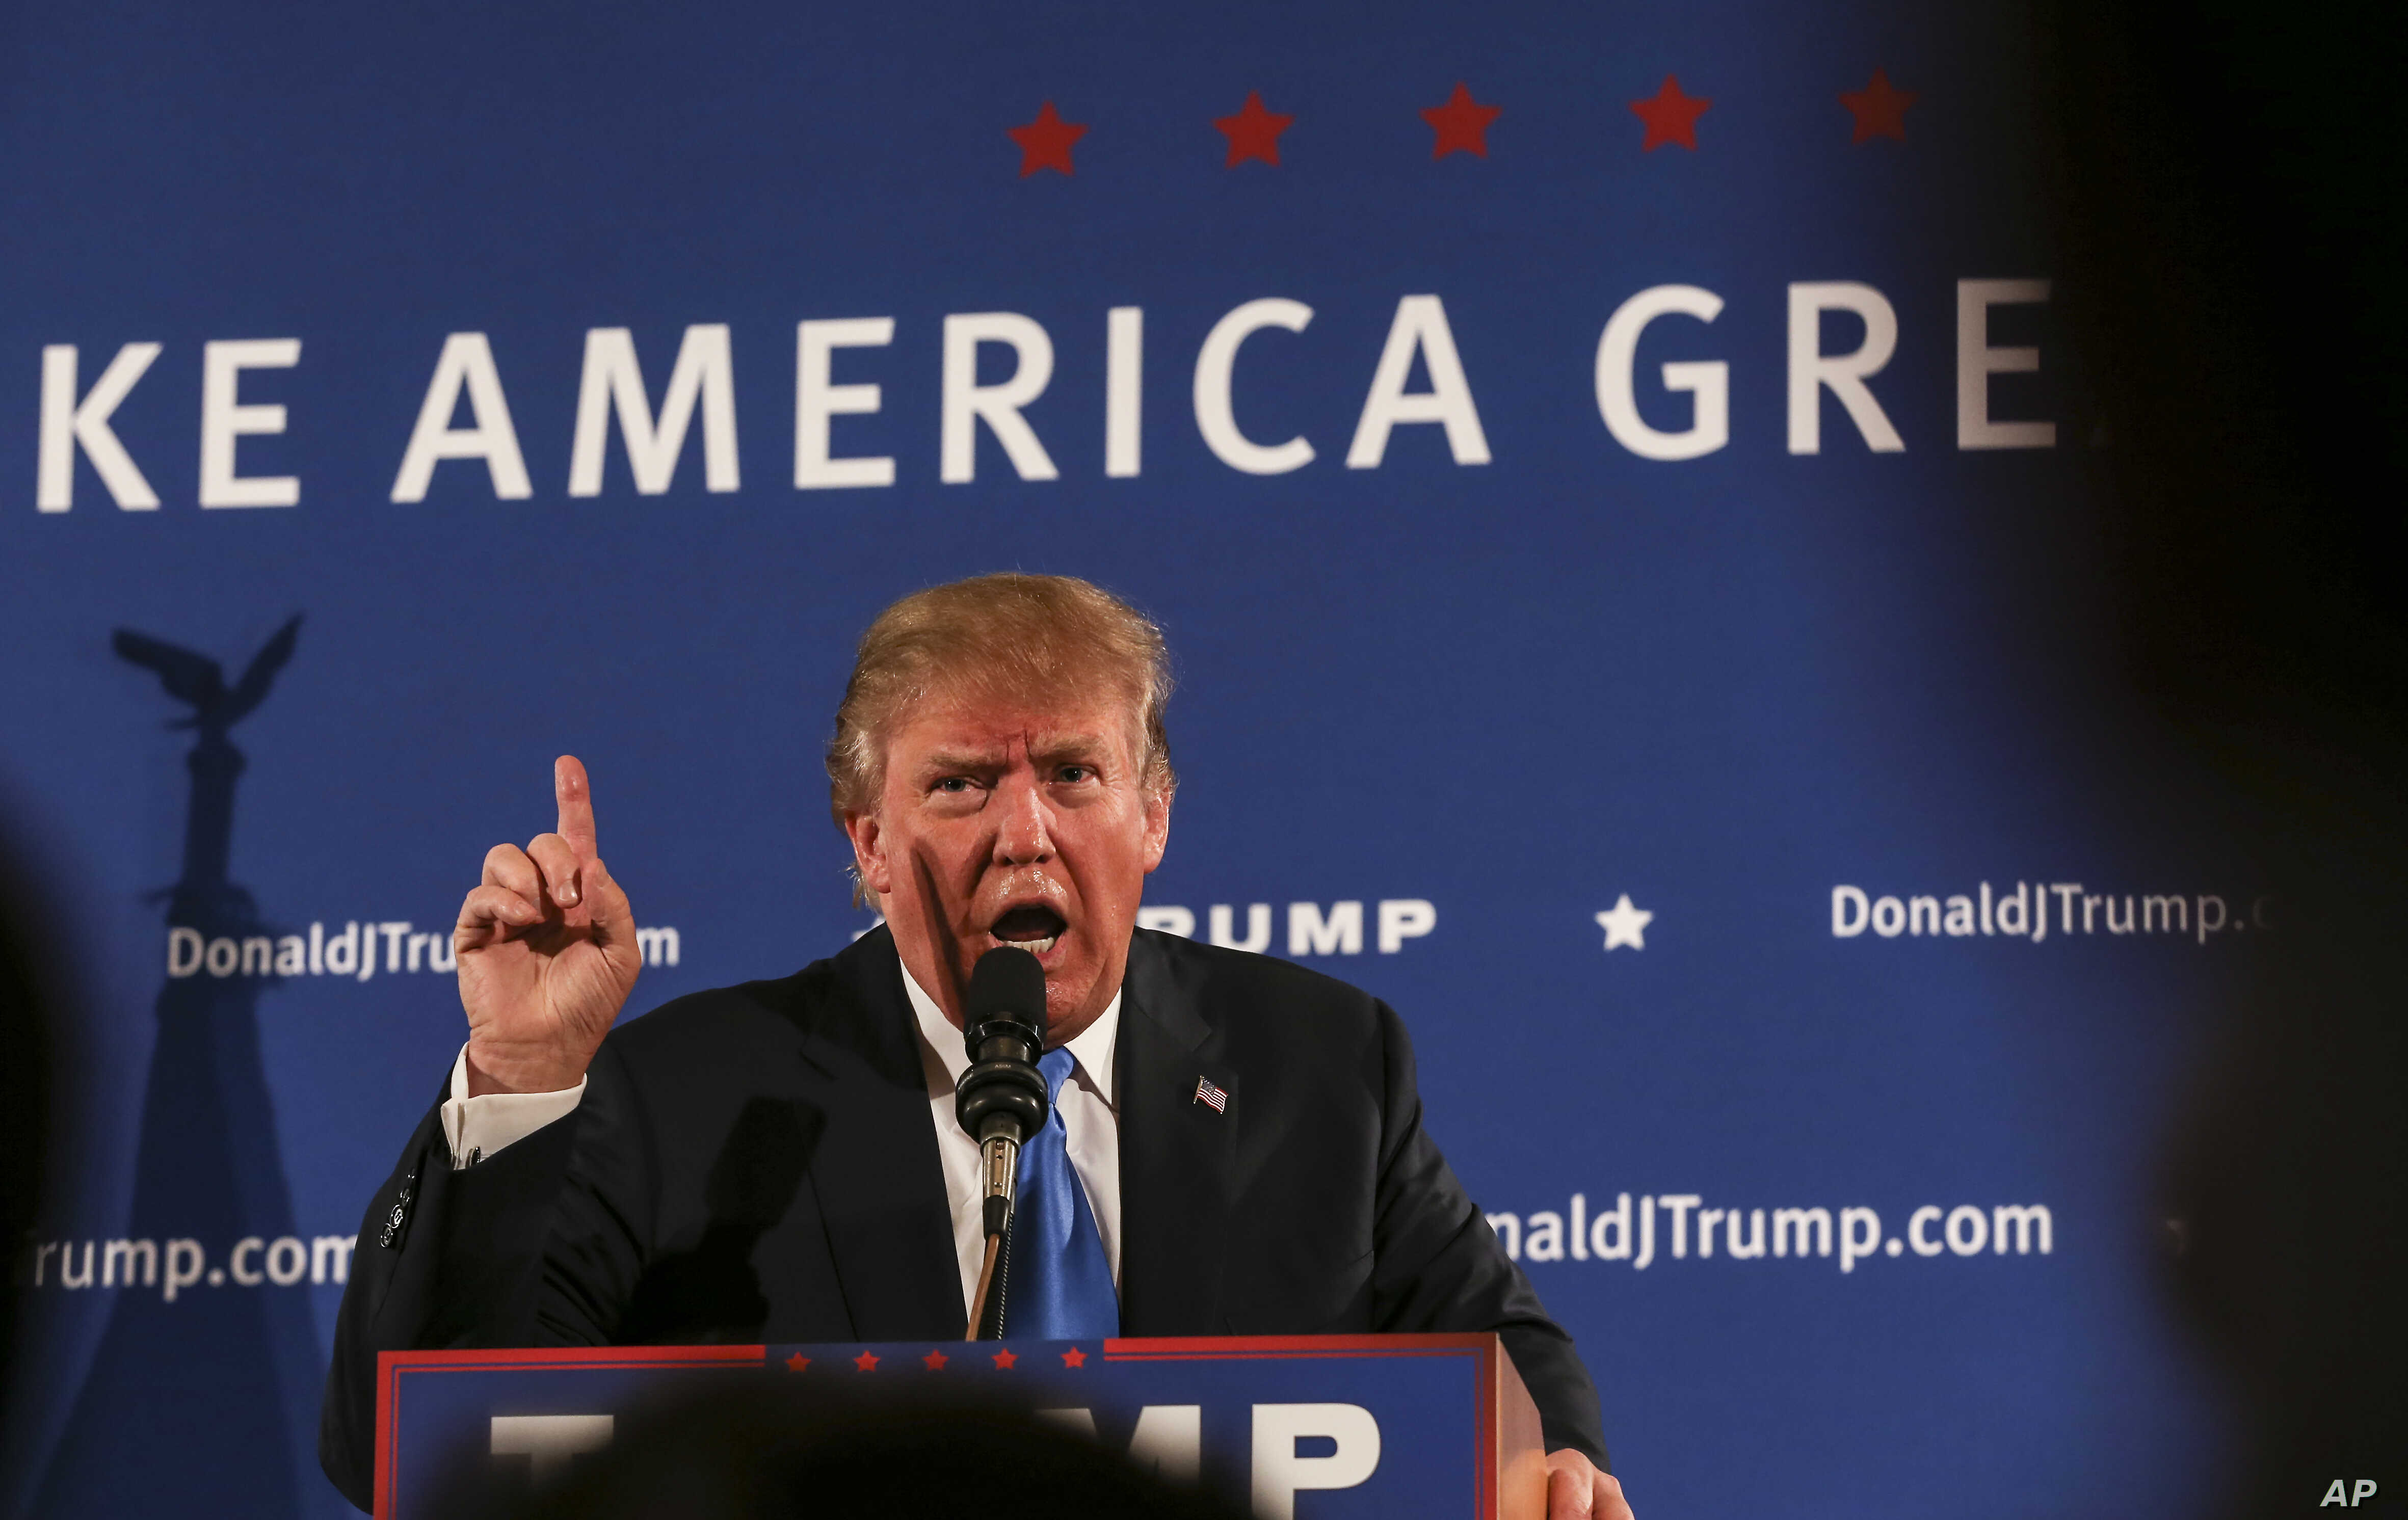 Republican presidential candidate Donald Trump gestures while speaking at a town hall meeting at Atkinson Country Club in Atkinson, N.H., Oct. 26, 2015.